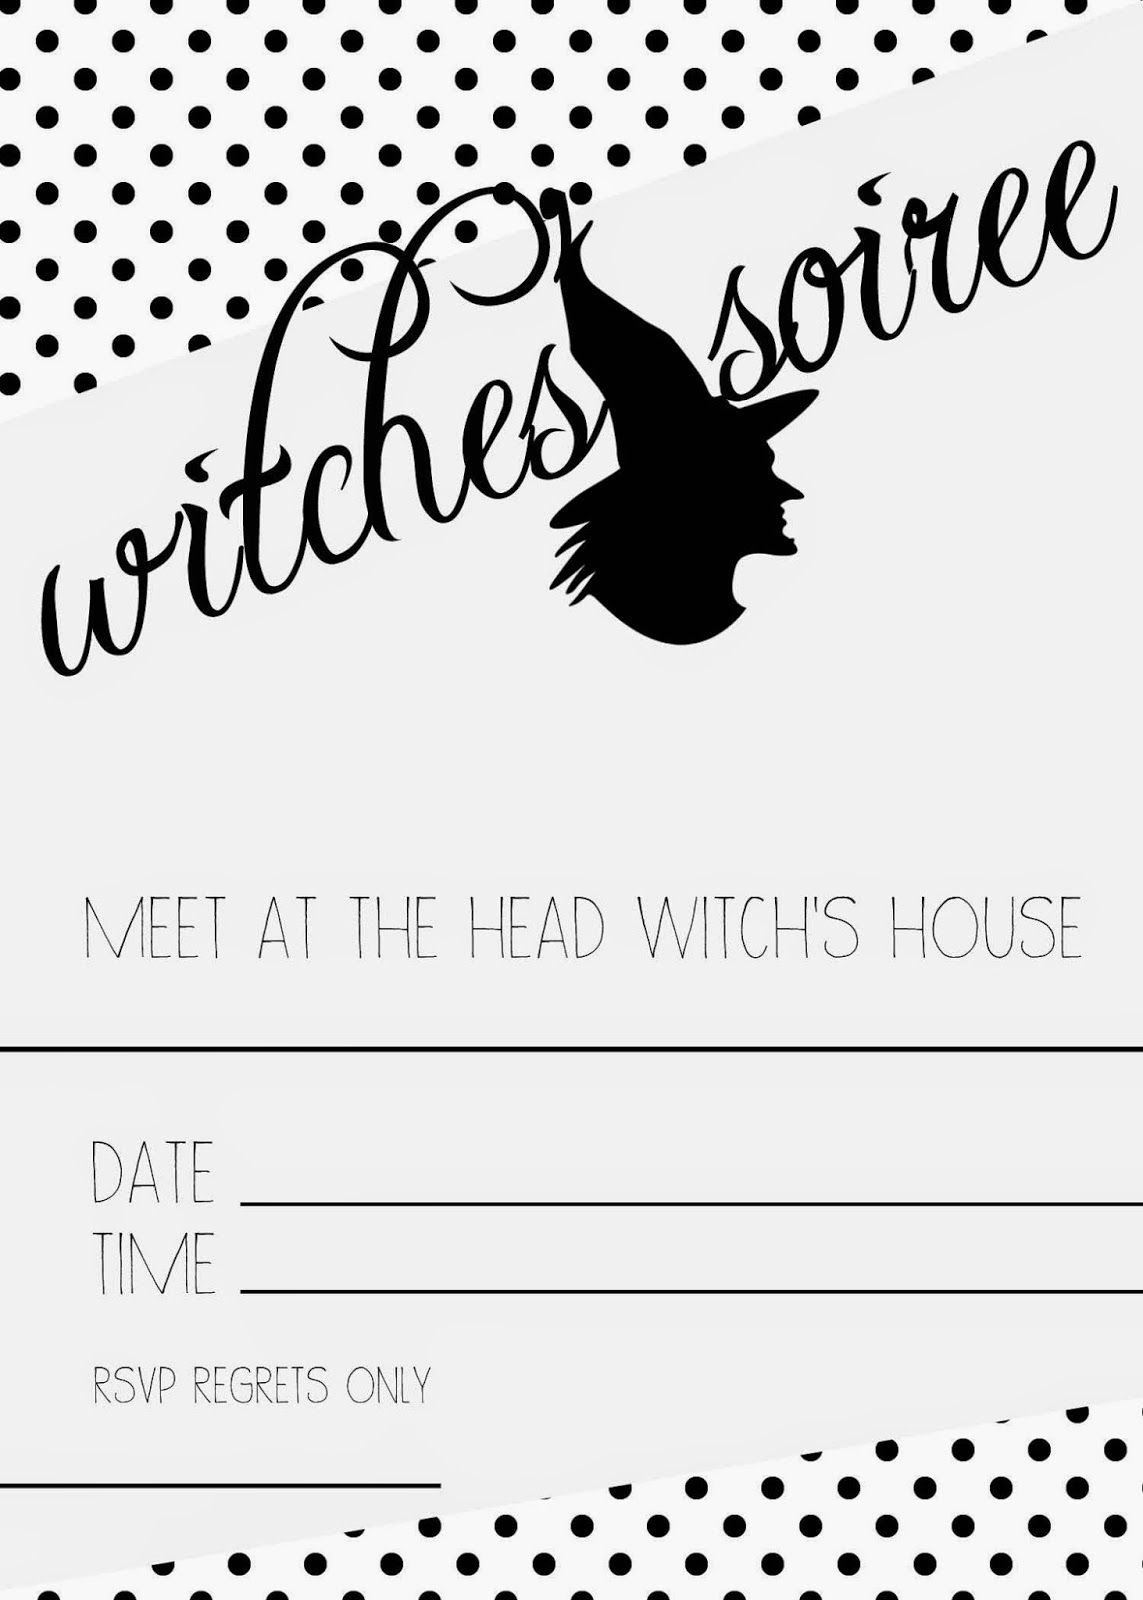 witches soiree crafty 2 the core diy galore halloween rh pinterest com